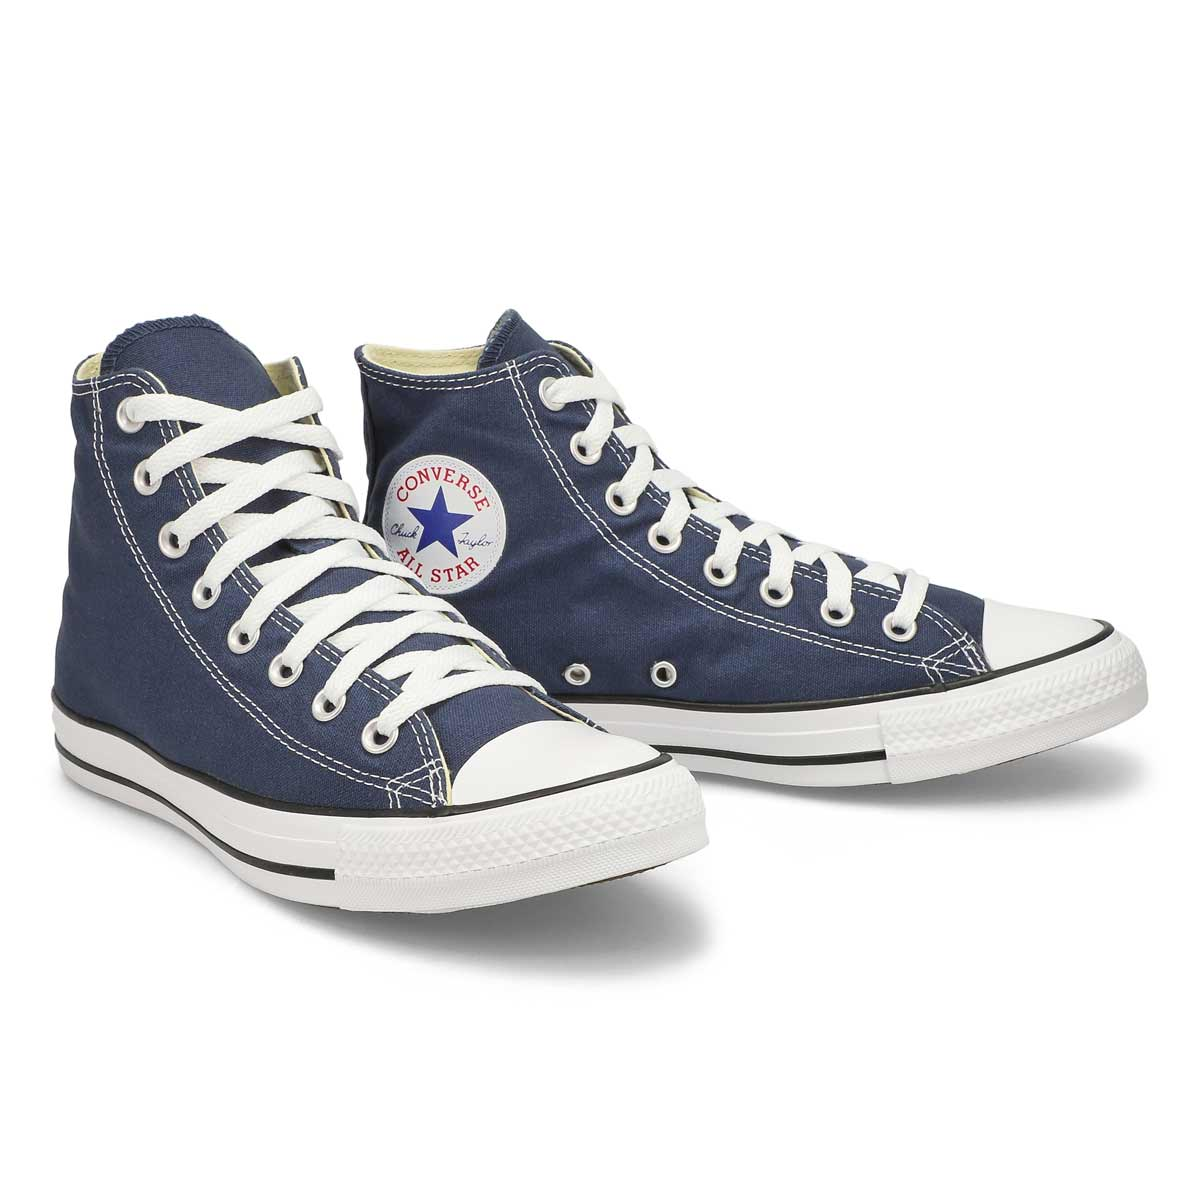 Mns CT All Star Core Hi nvy high top snk